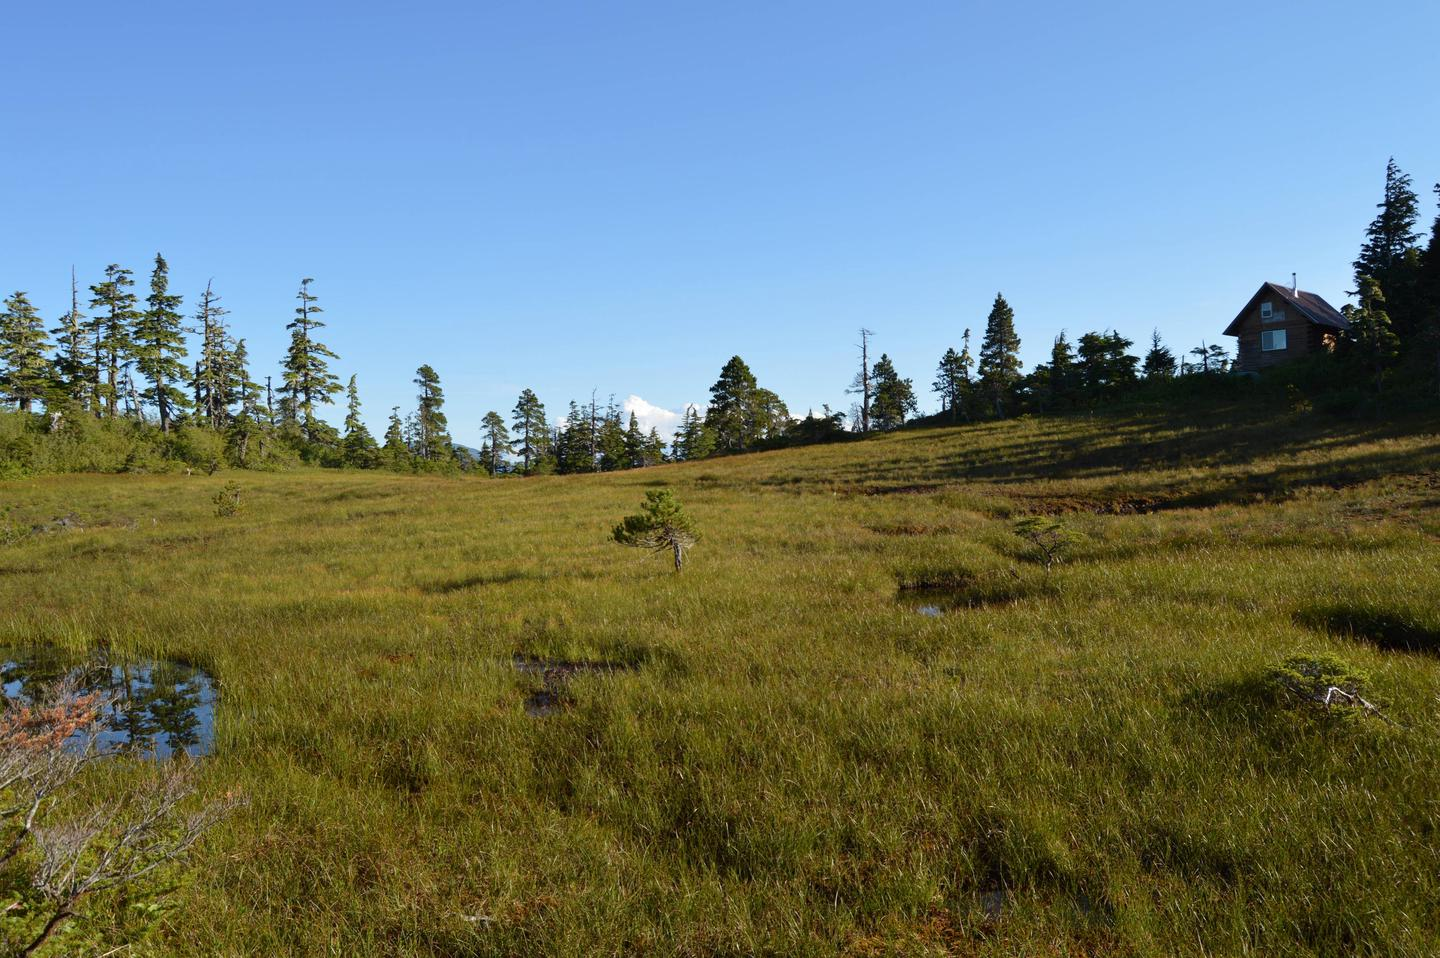 Muskeg behind the cabin